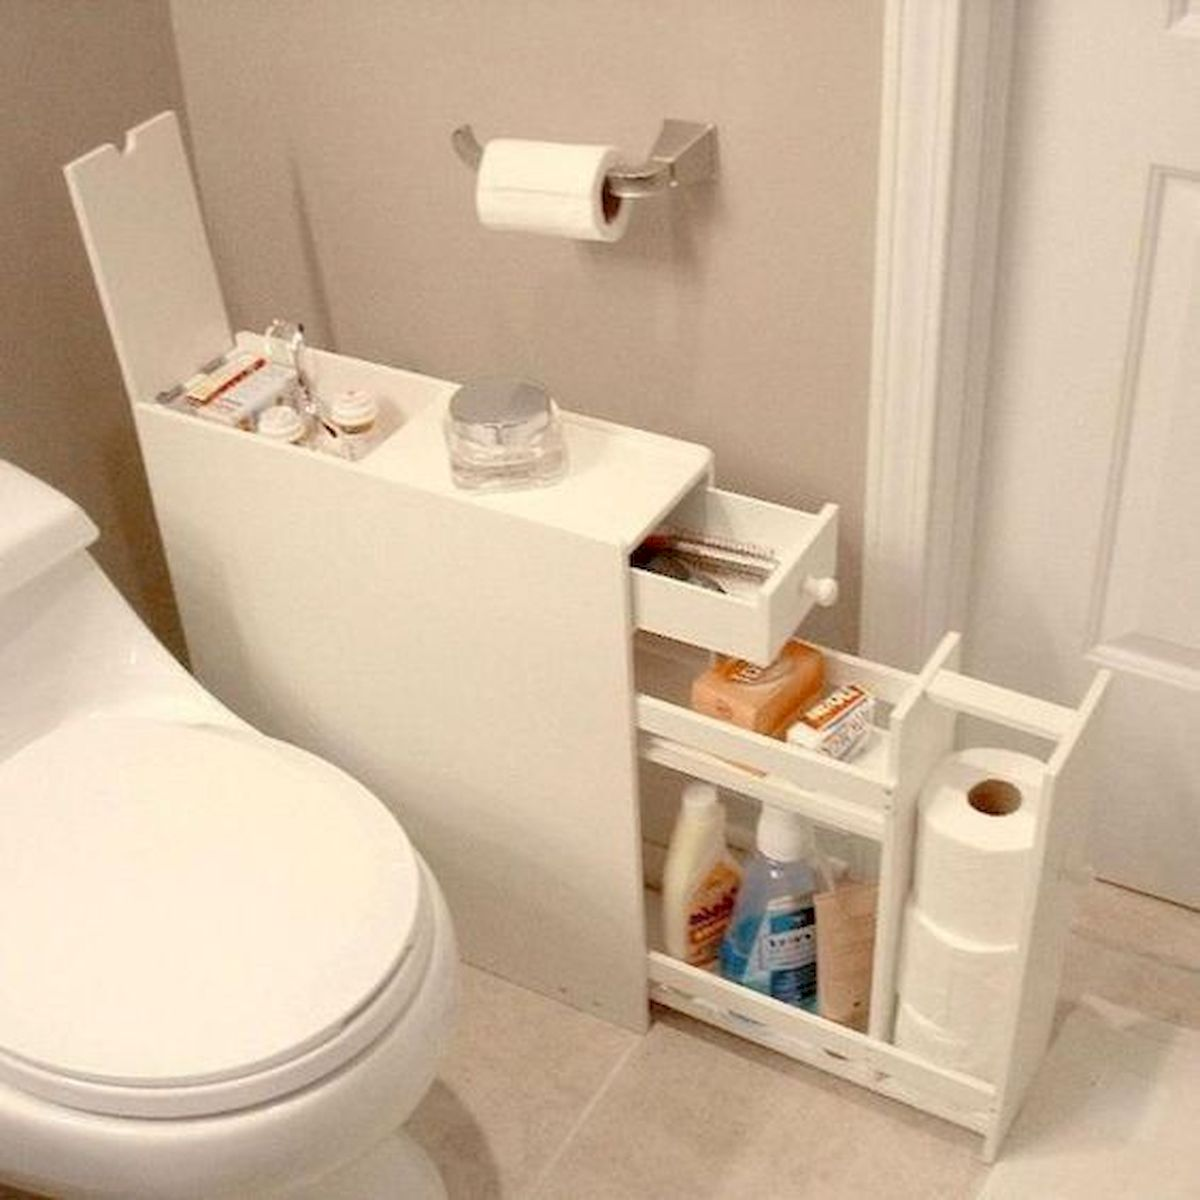 50 Best DIY Storage Design Ideas to Maximize Your Small Bathroom Space (10)